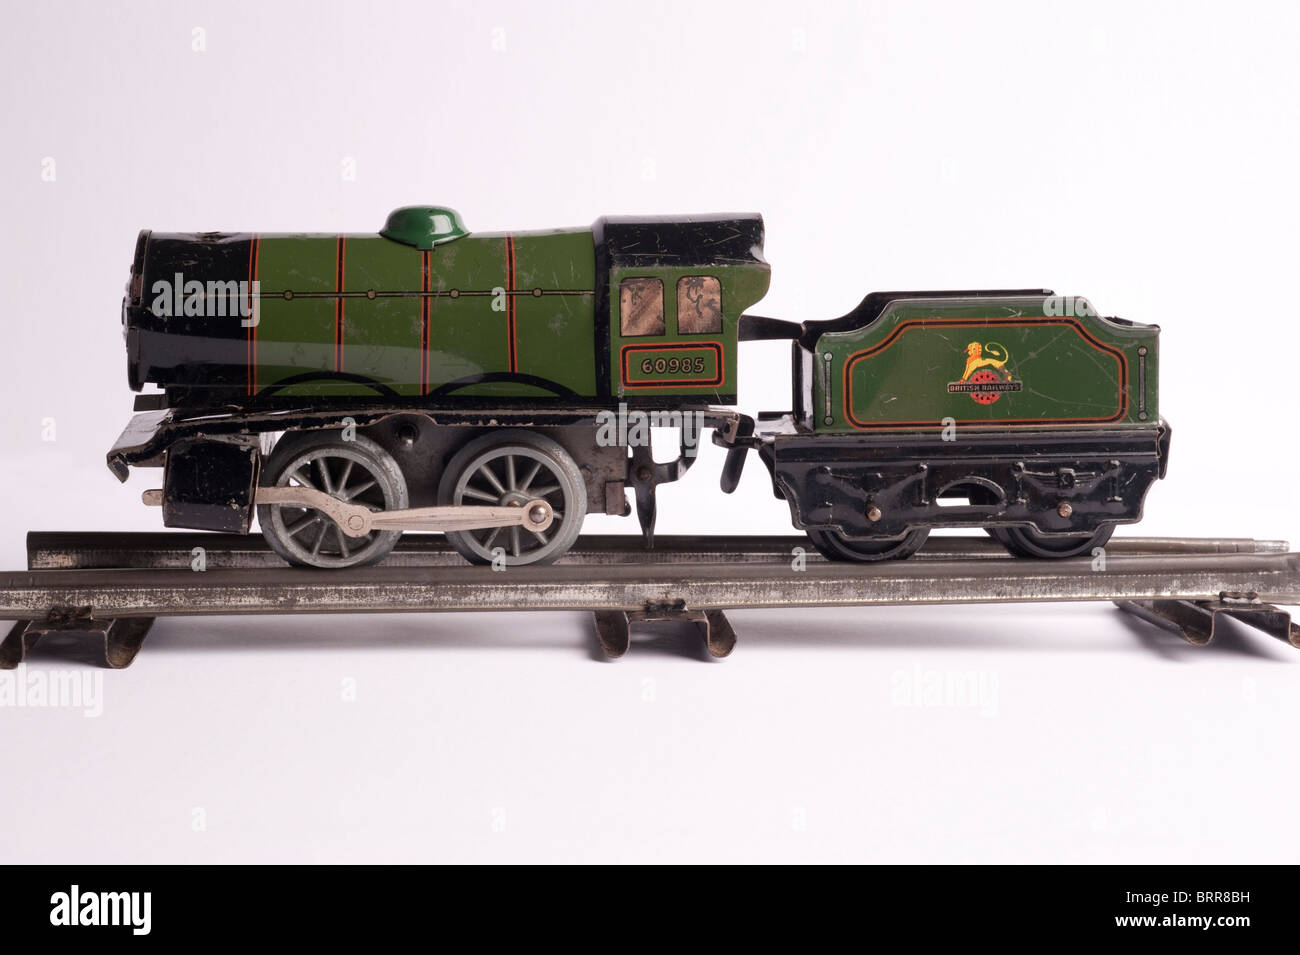 Tinplate Hornby 0 Gauge Train, side view, circa 1950s - Stock Image